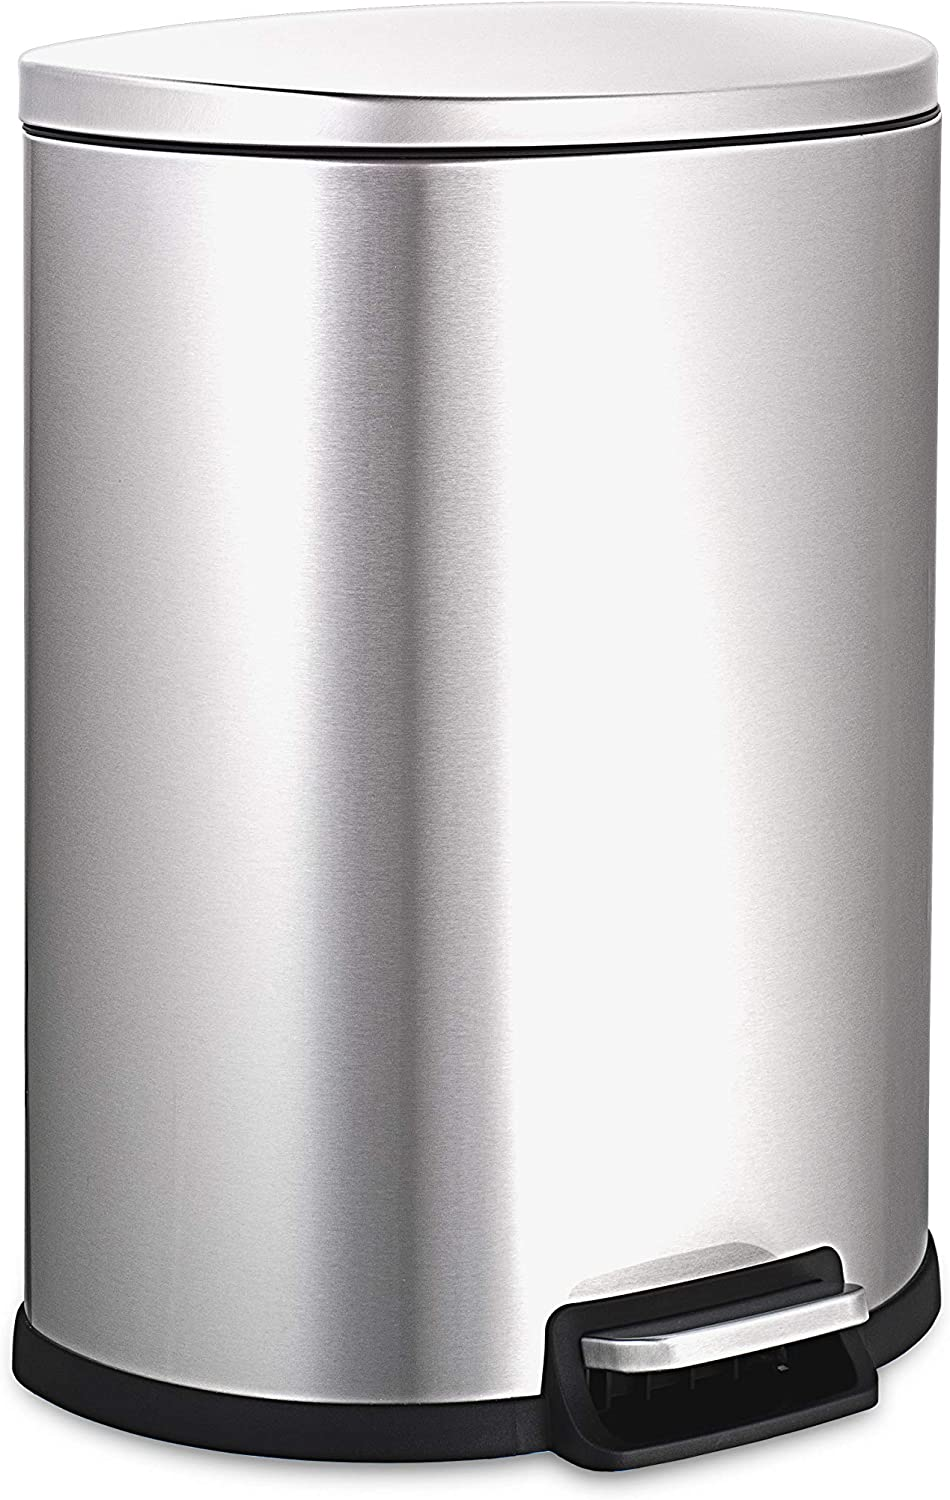 NINESTARS AMZ-SOT-50-3 Step-on Trashcan, 13 Gal, STAINLESS STEEL